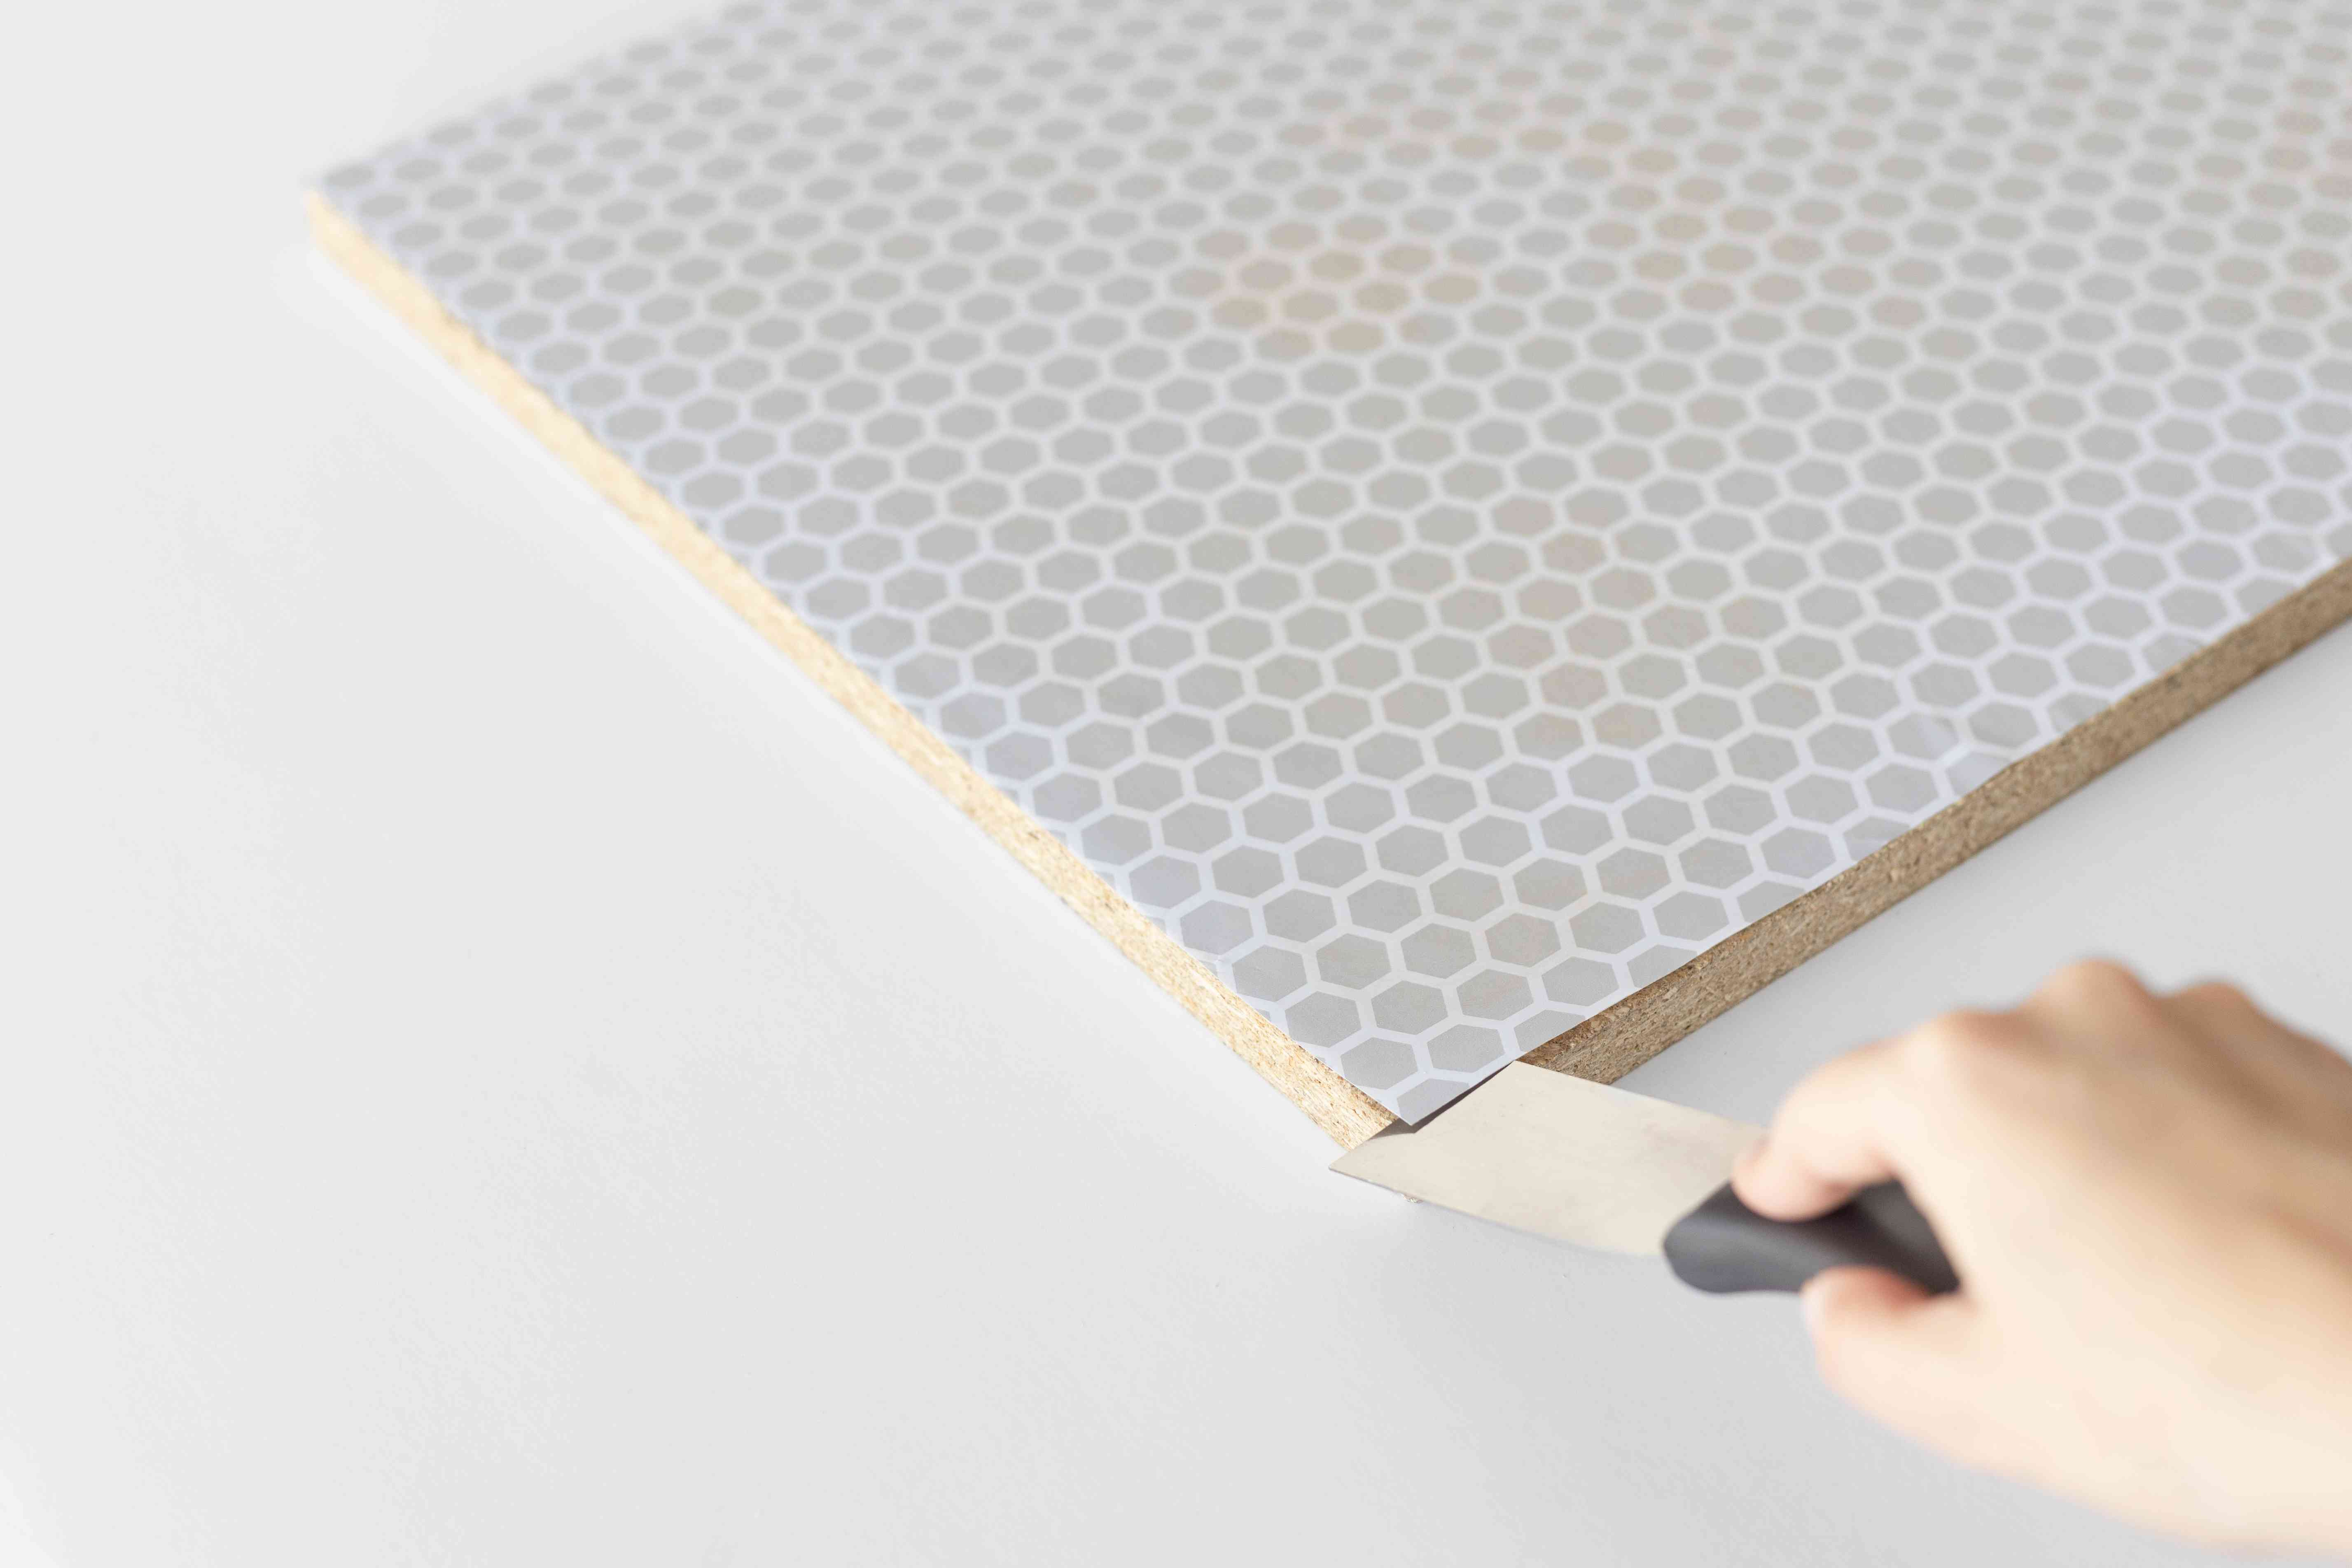 using a putty knife to peel back shelf paper